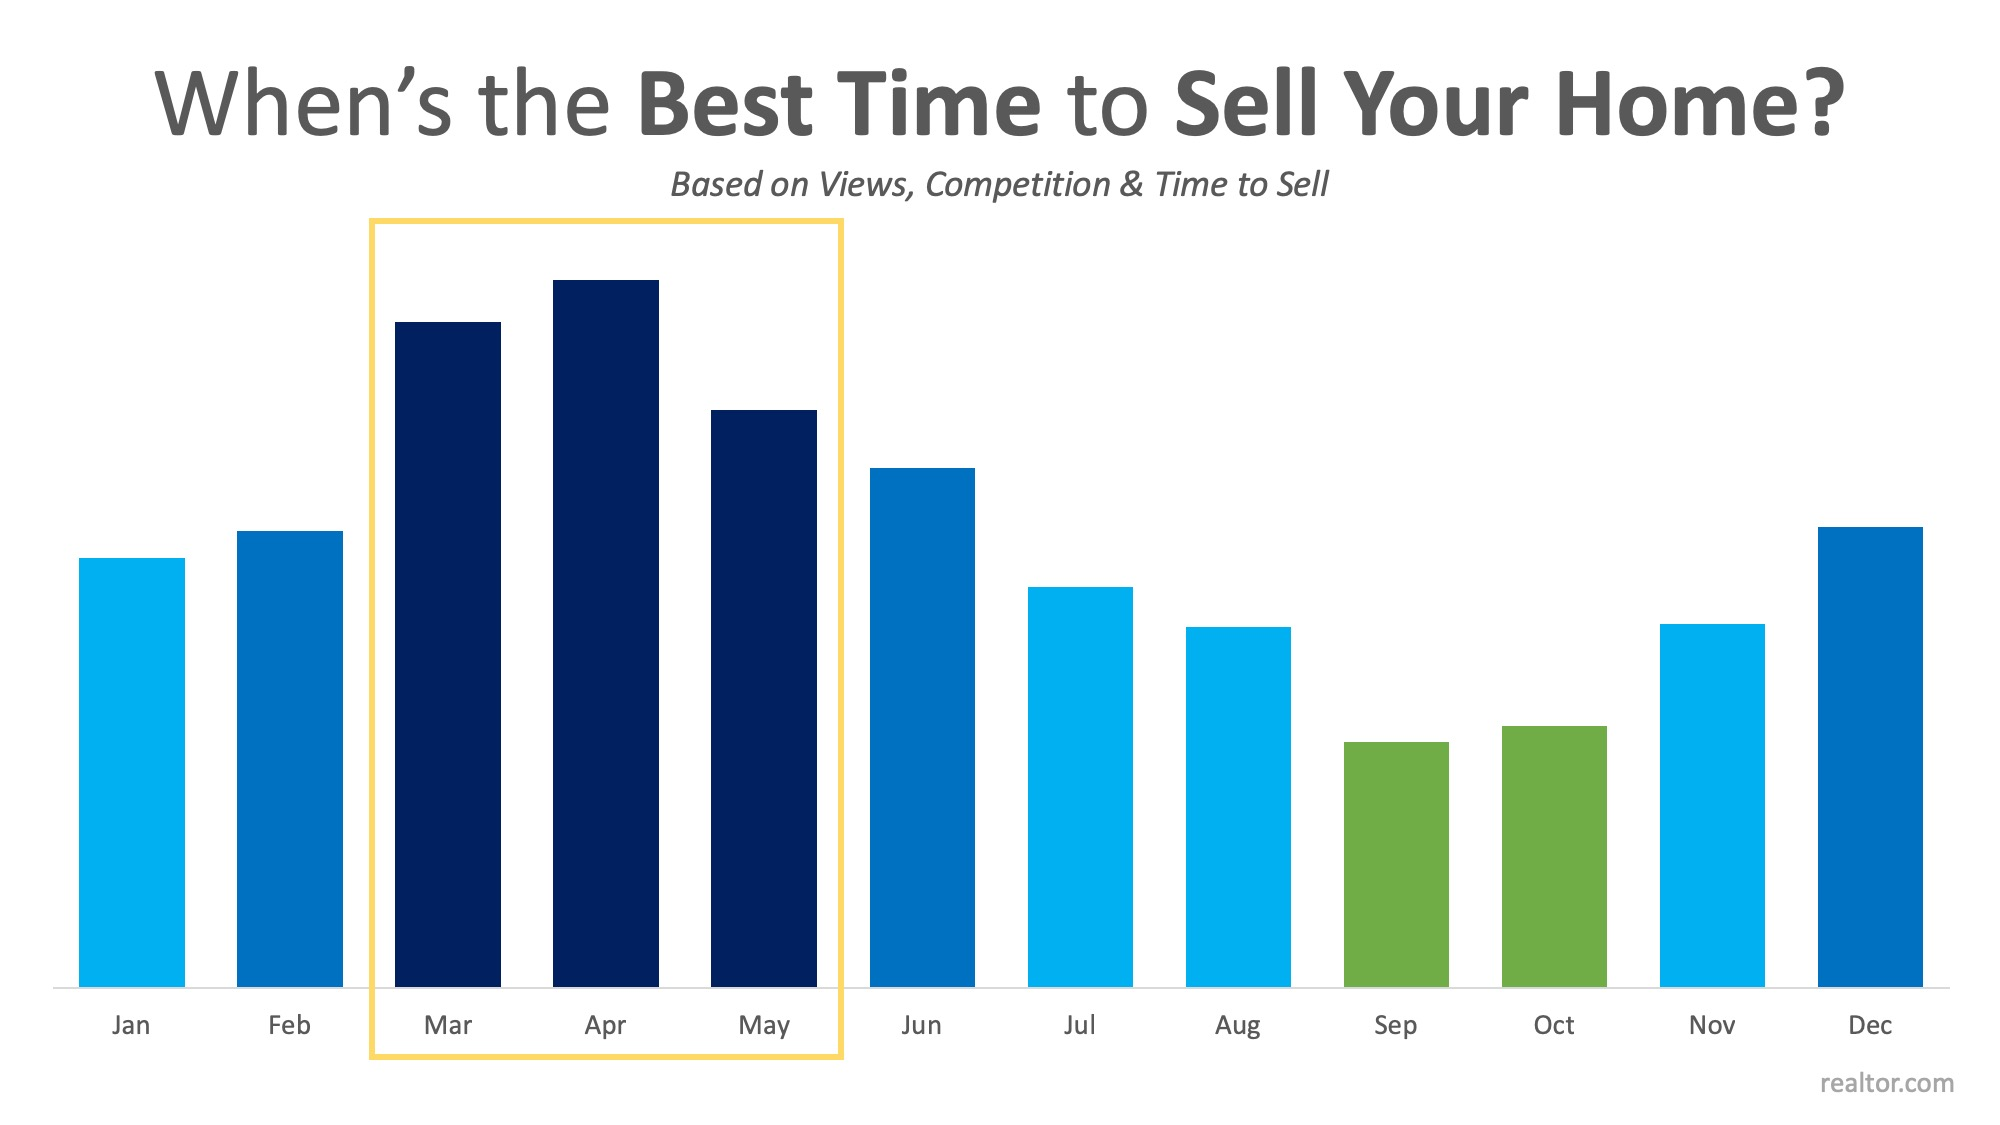 when is the best month to list your home for sale?